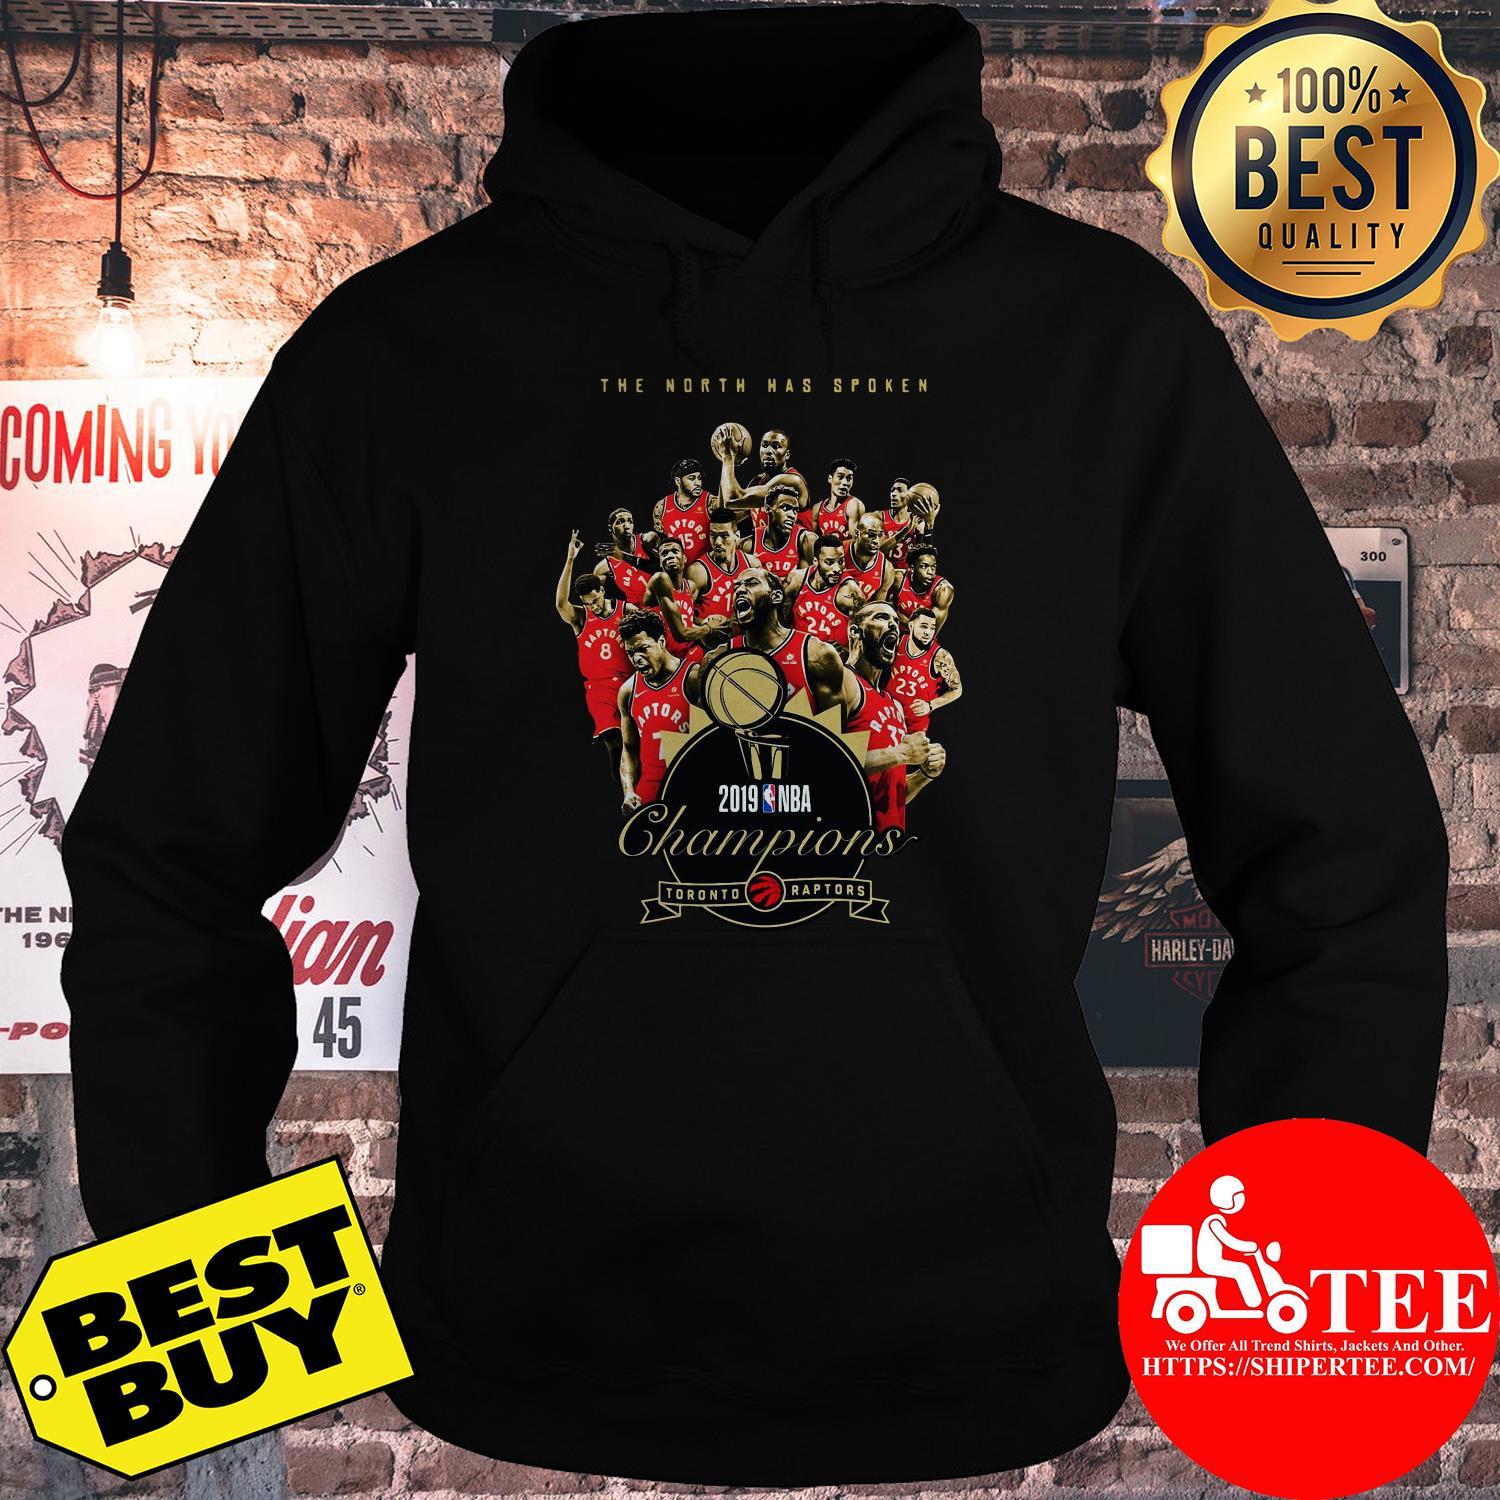 Toronto Raptors The North has spoken 2019 NBA Champions hoodie